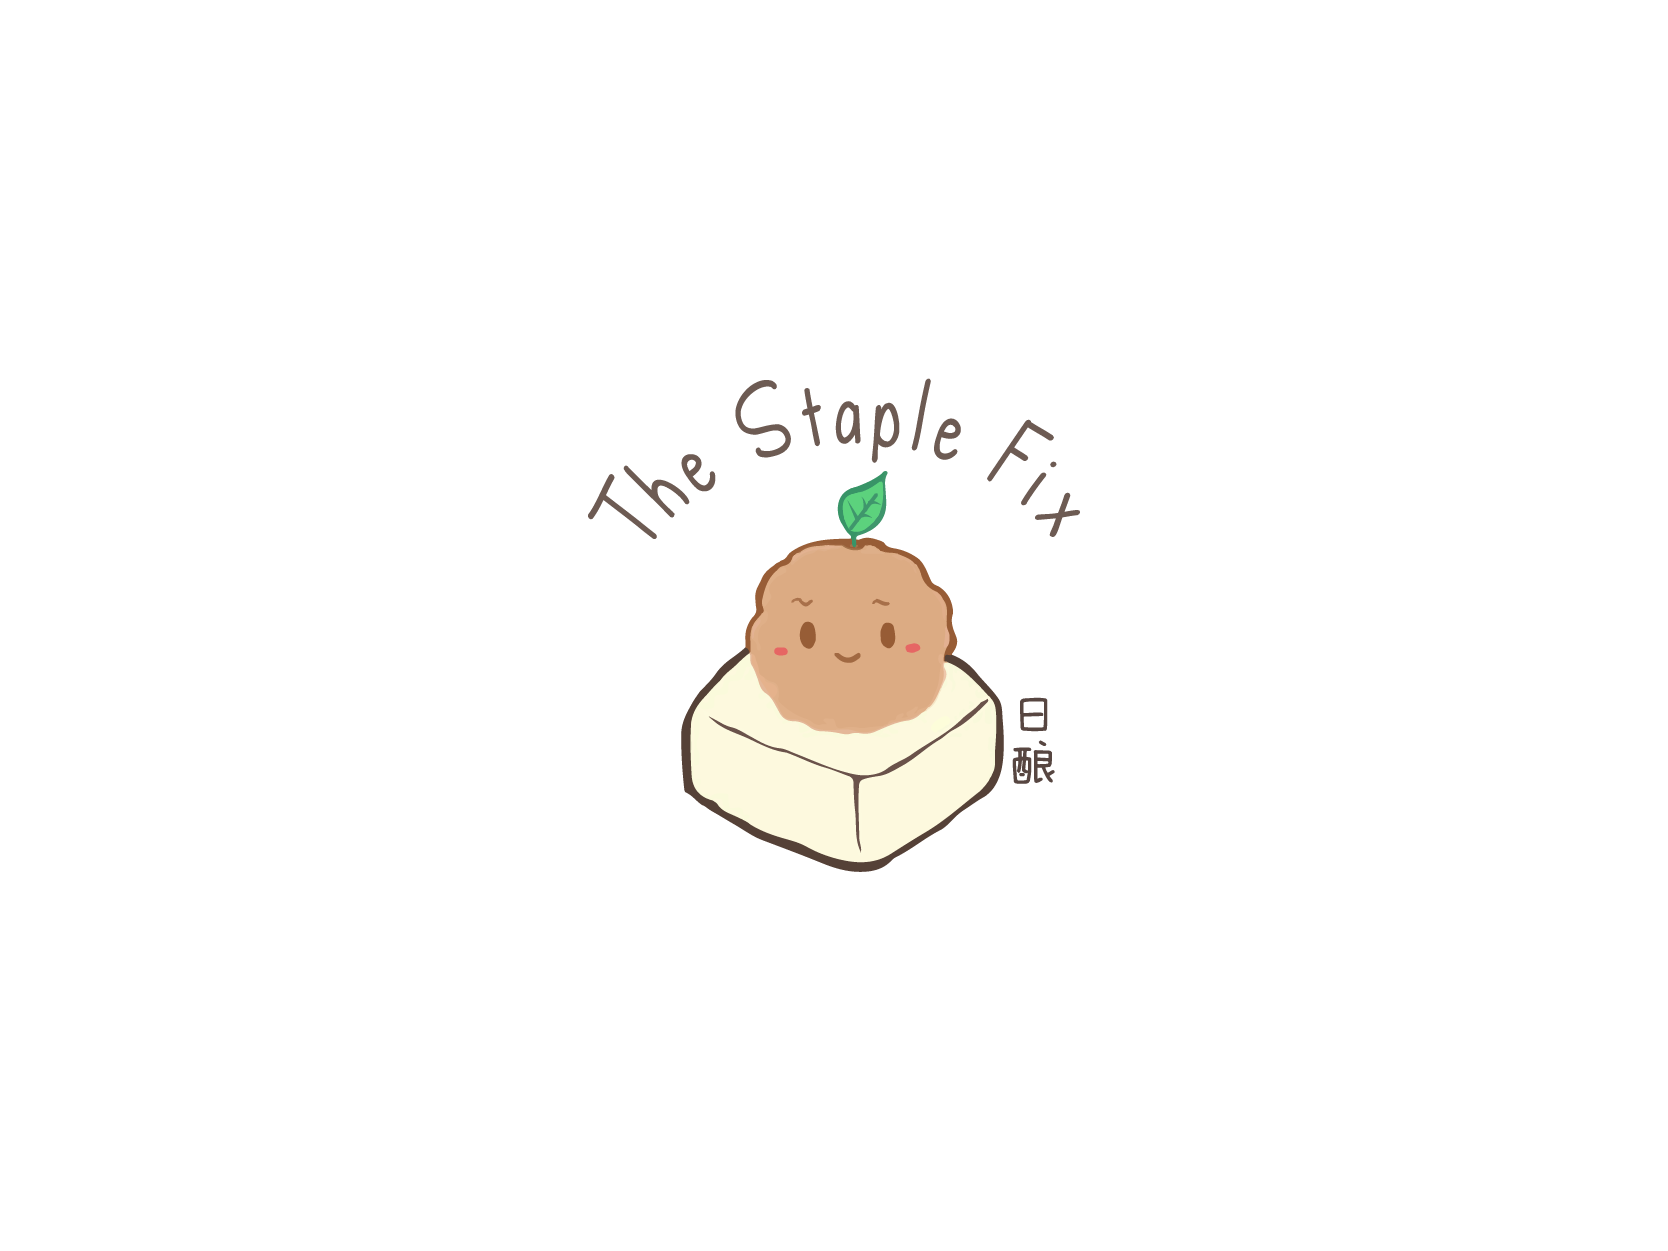 The Staple Fix Logo Design